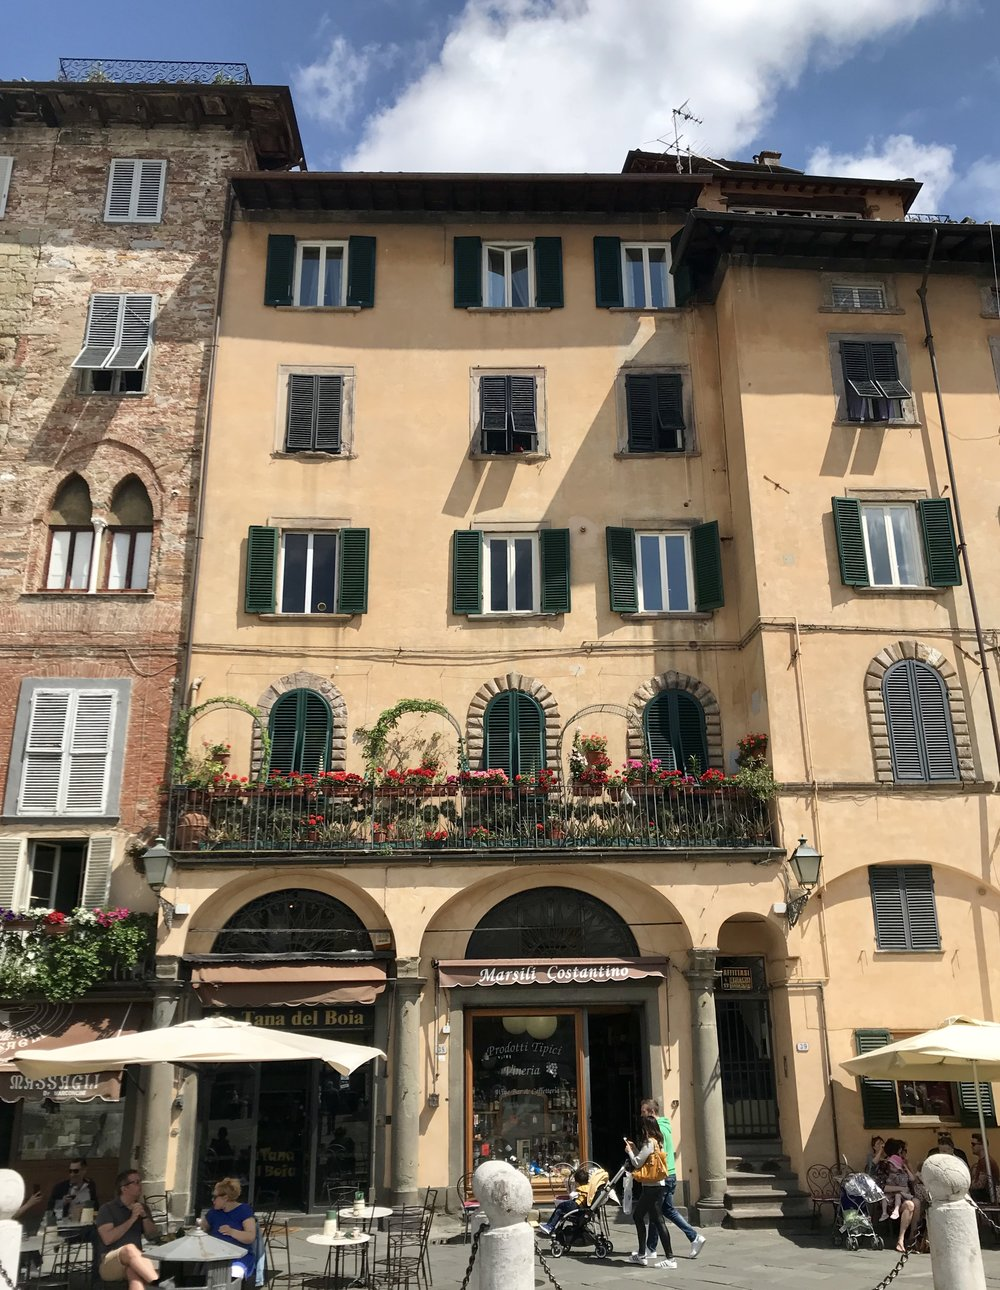 These flowers can be enjoyed by the thousands of visitors to Piazza San Michele in Lucca as the building fronts the square.